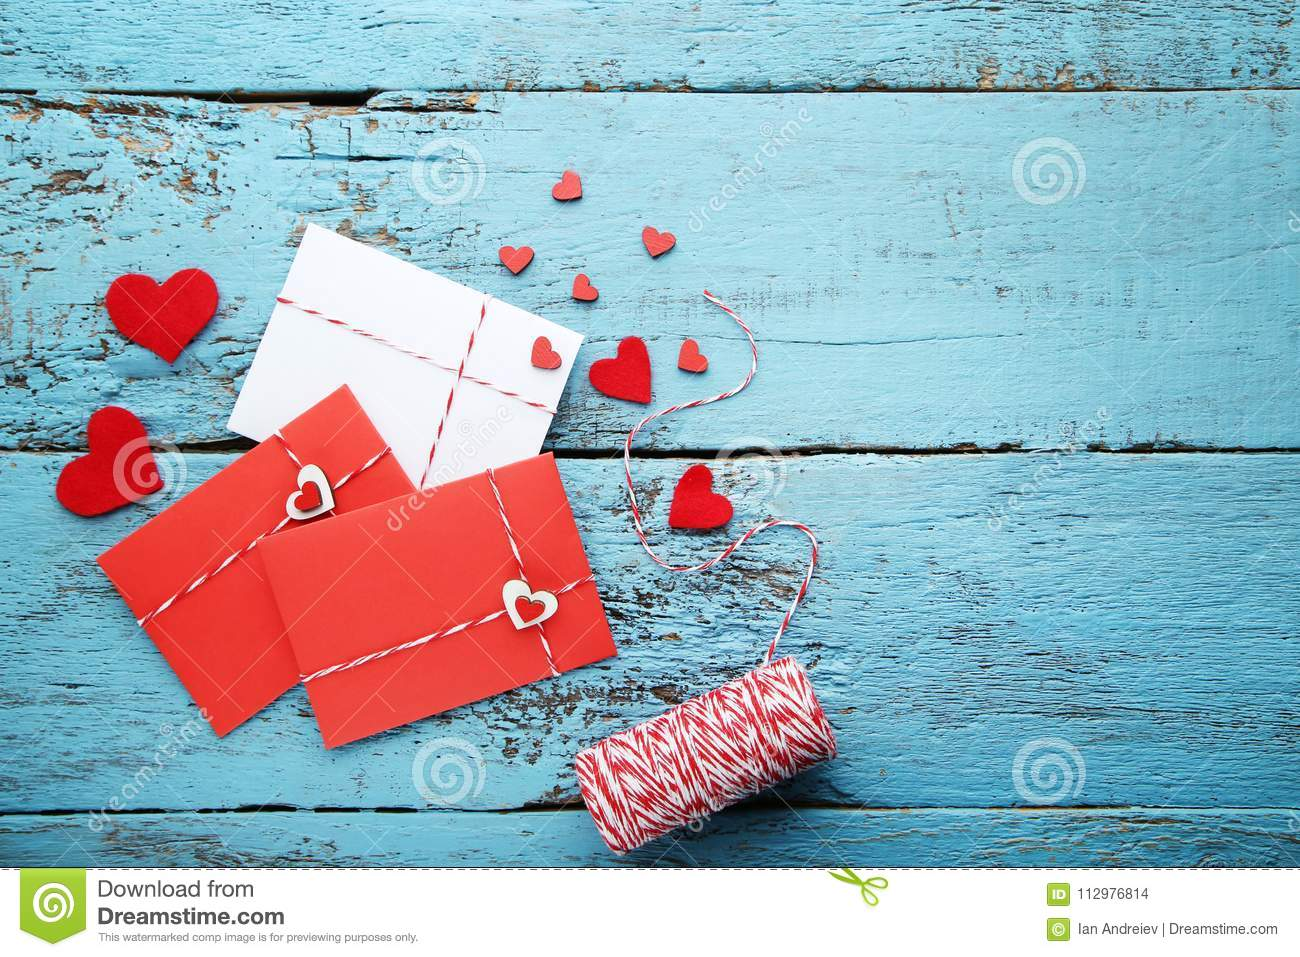 Red hearts with envelopes